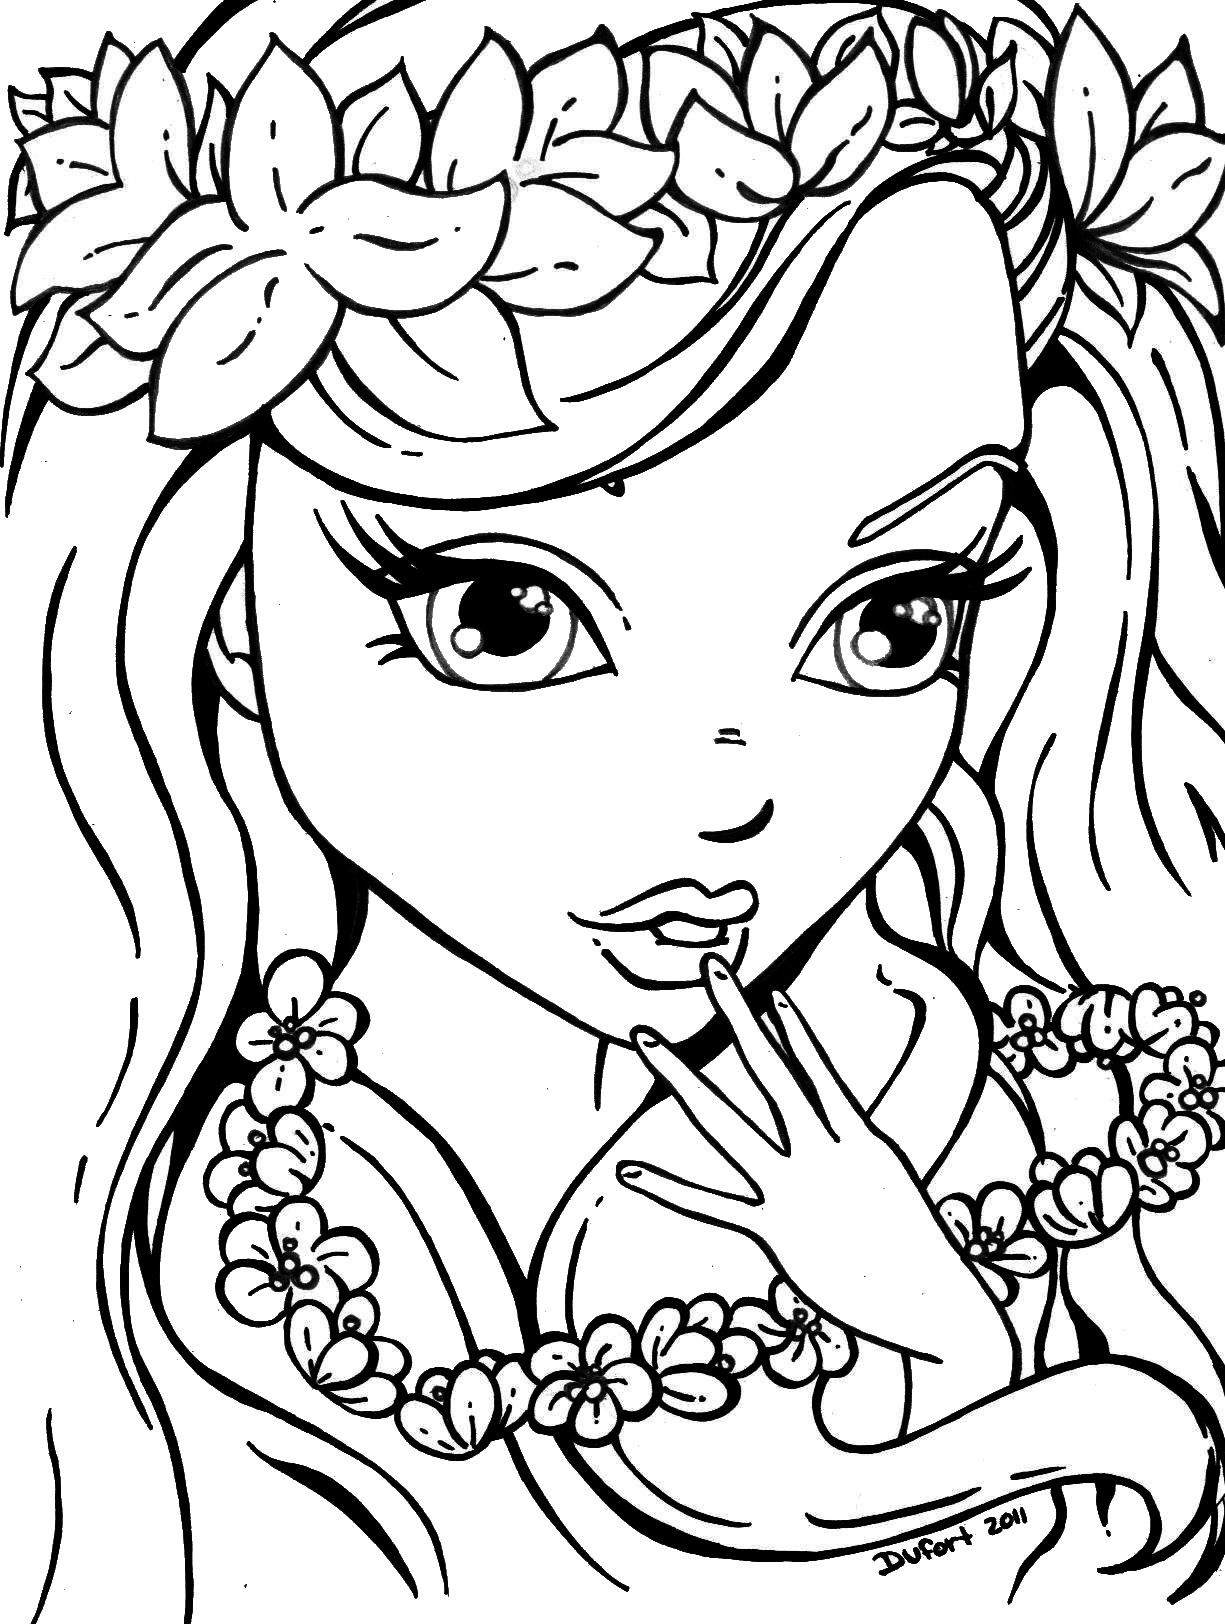 Tween Coloring Pages Az Coloring Pages Coloring Pages For Tweens